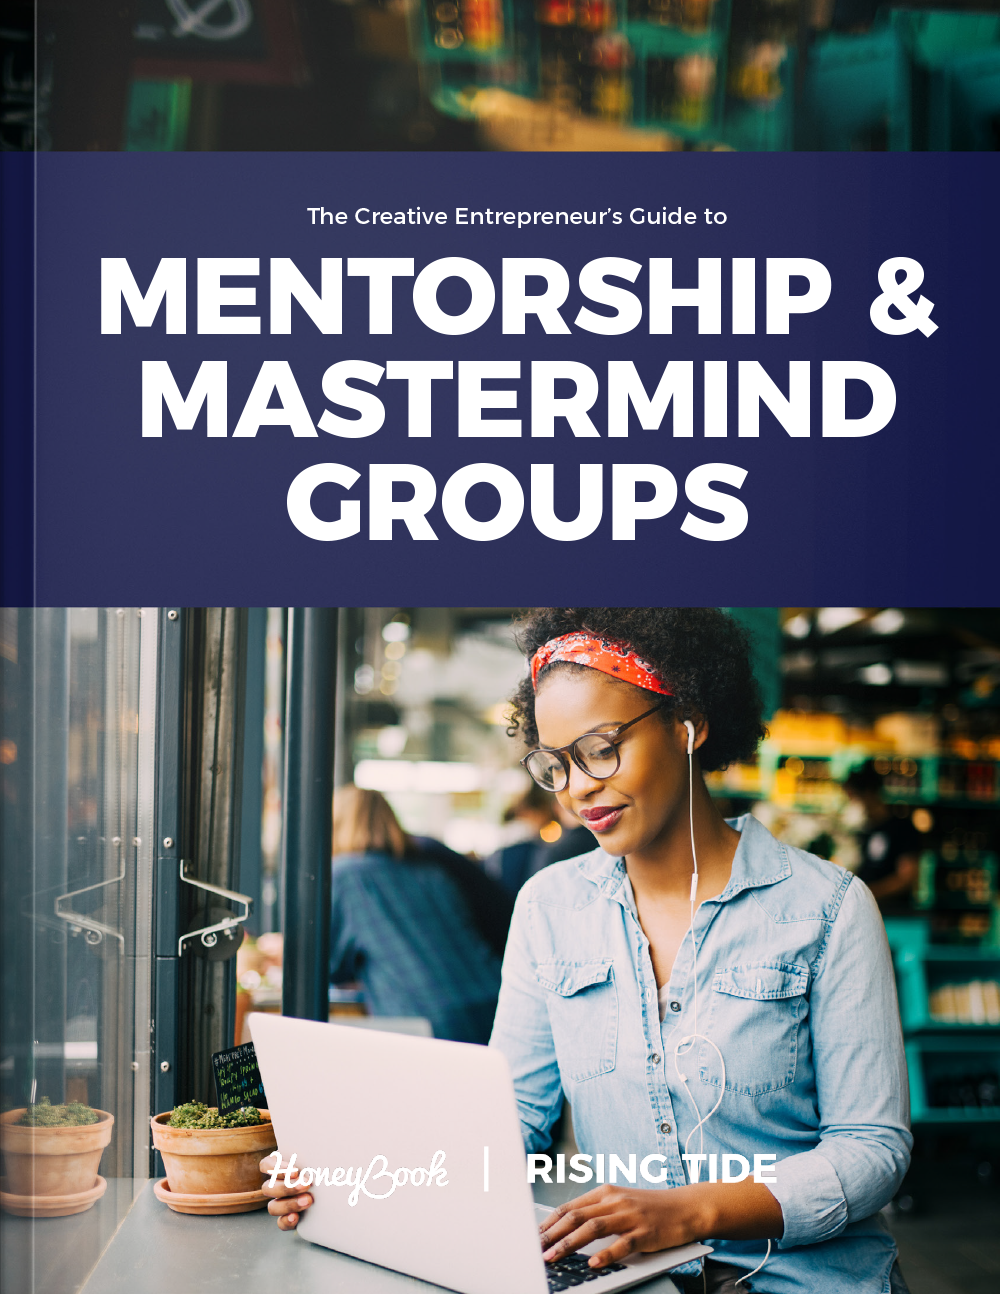 The Ultimate Guide to Mentorships and Mastermind Groups